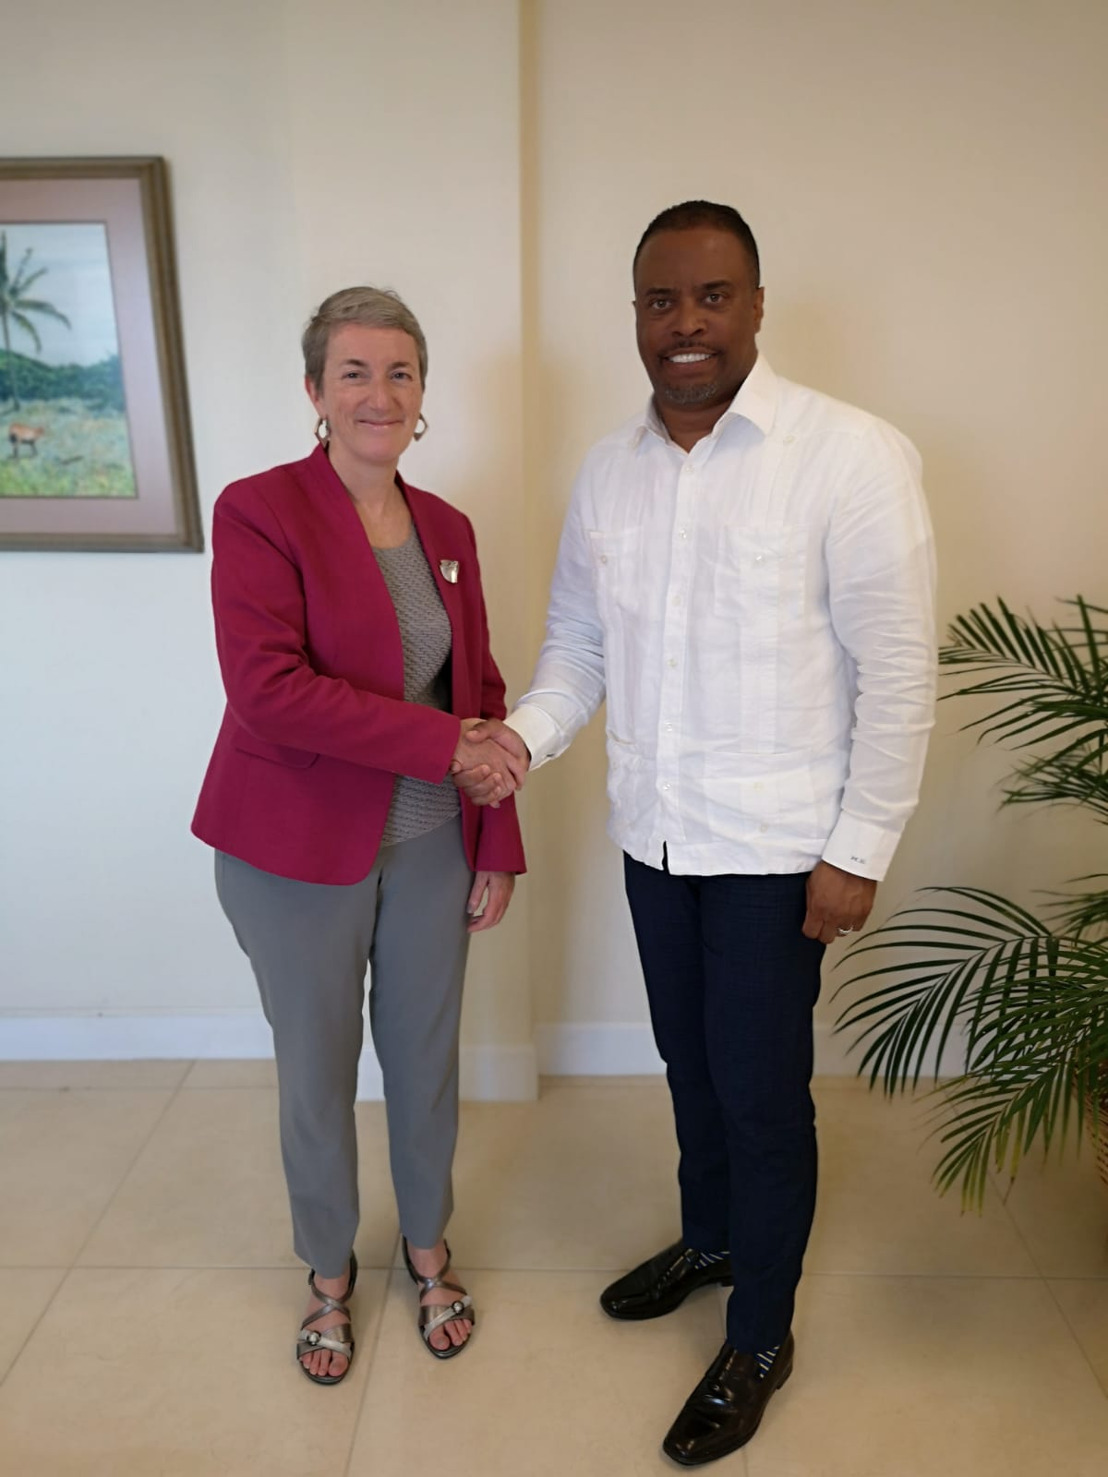 Saint Kitts and Nevis ratifies the Agreement that establishes the EU-LAC Foundation as an International Organisation